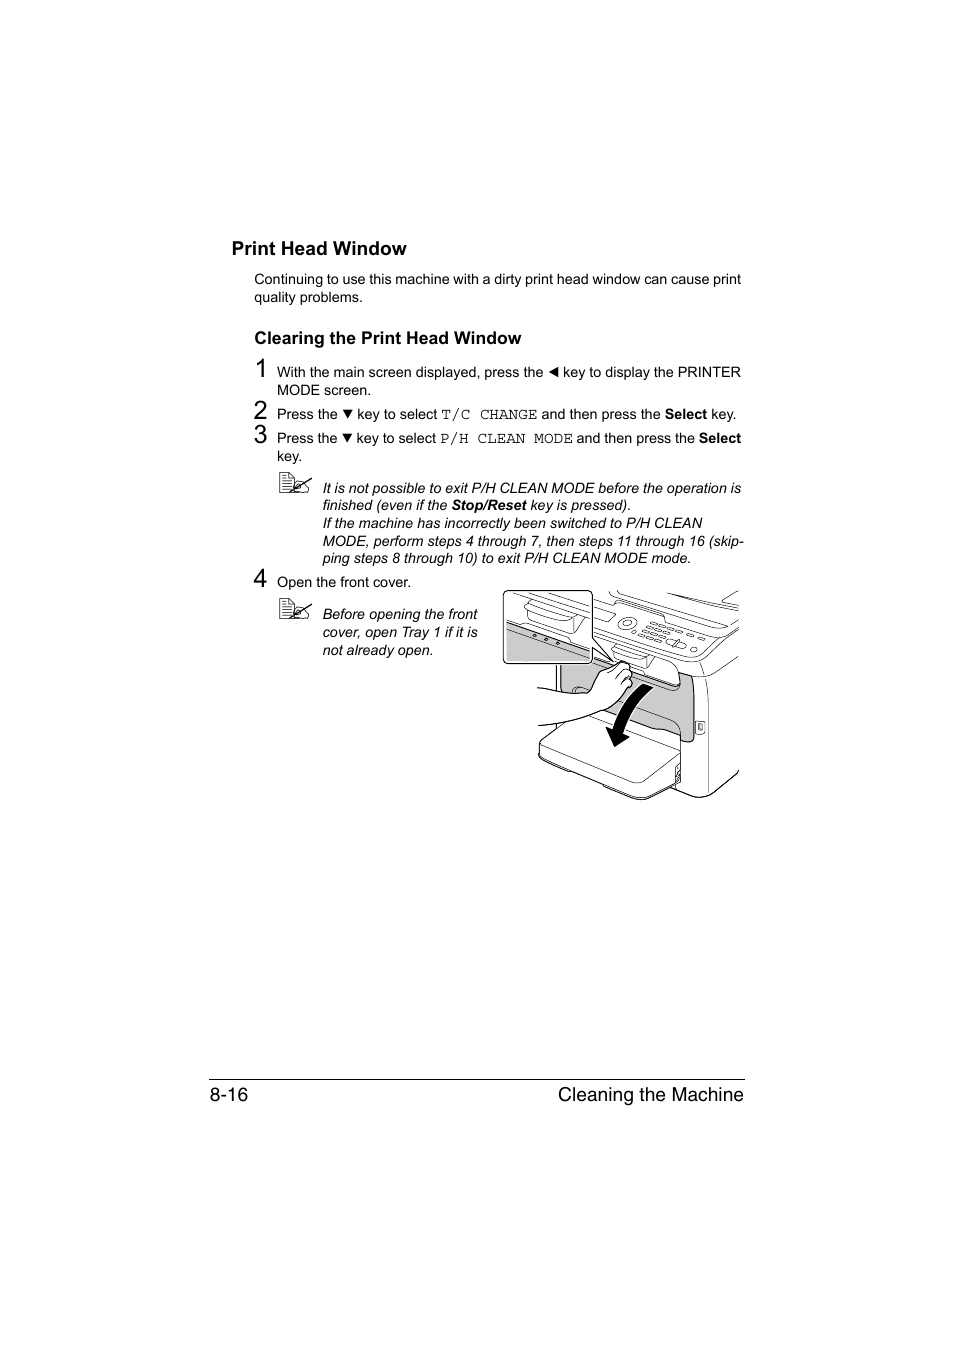 print head window clearing the print head window print head window rh manualsdir com Instruction Manual Instruction Manual